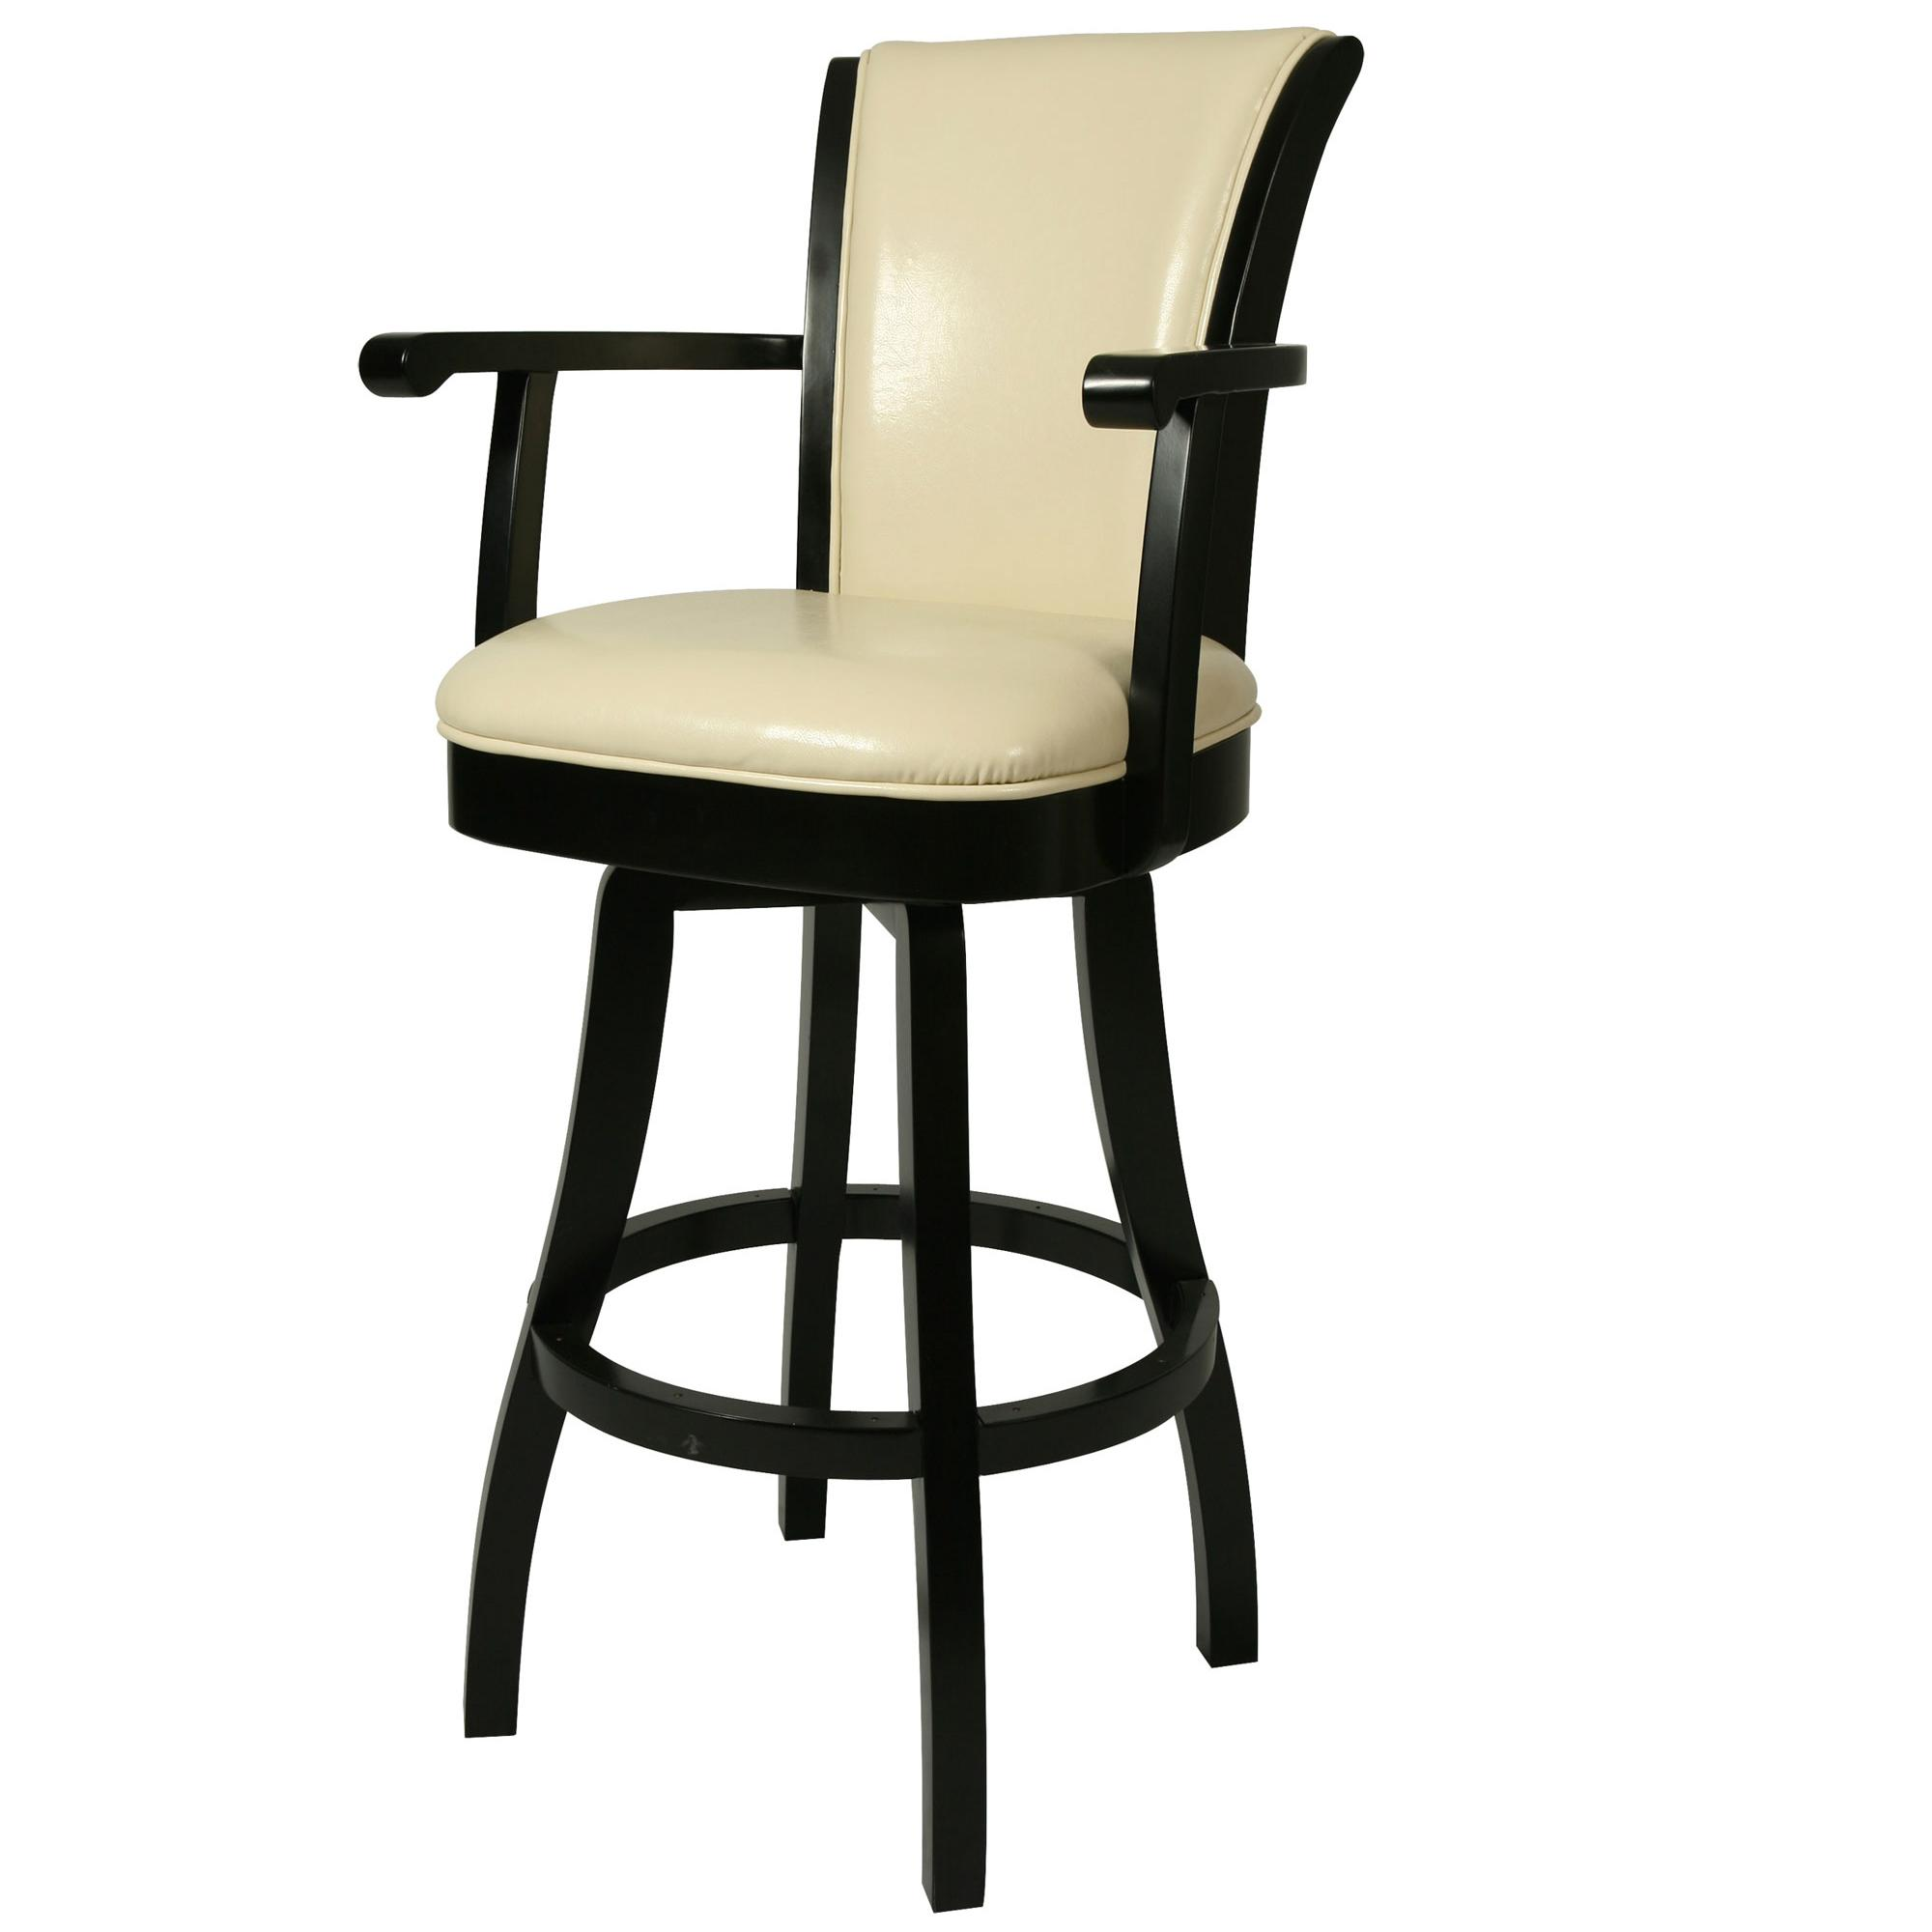 Pastel Minson Wood Barstools Glenwood 30  Swivel Barstool with Arms in Cream Leather - AHFA - Bar Stool Dealer Locator  sc 1 st  Furniture Dealer Locator - Find your furniture & Pastel Minson Wood Barstools Glenwood 30